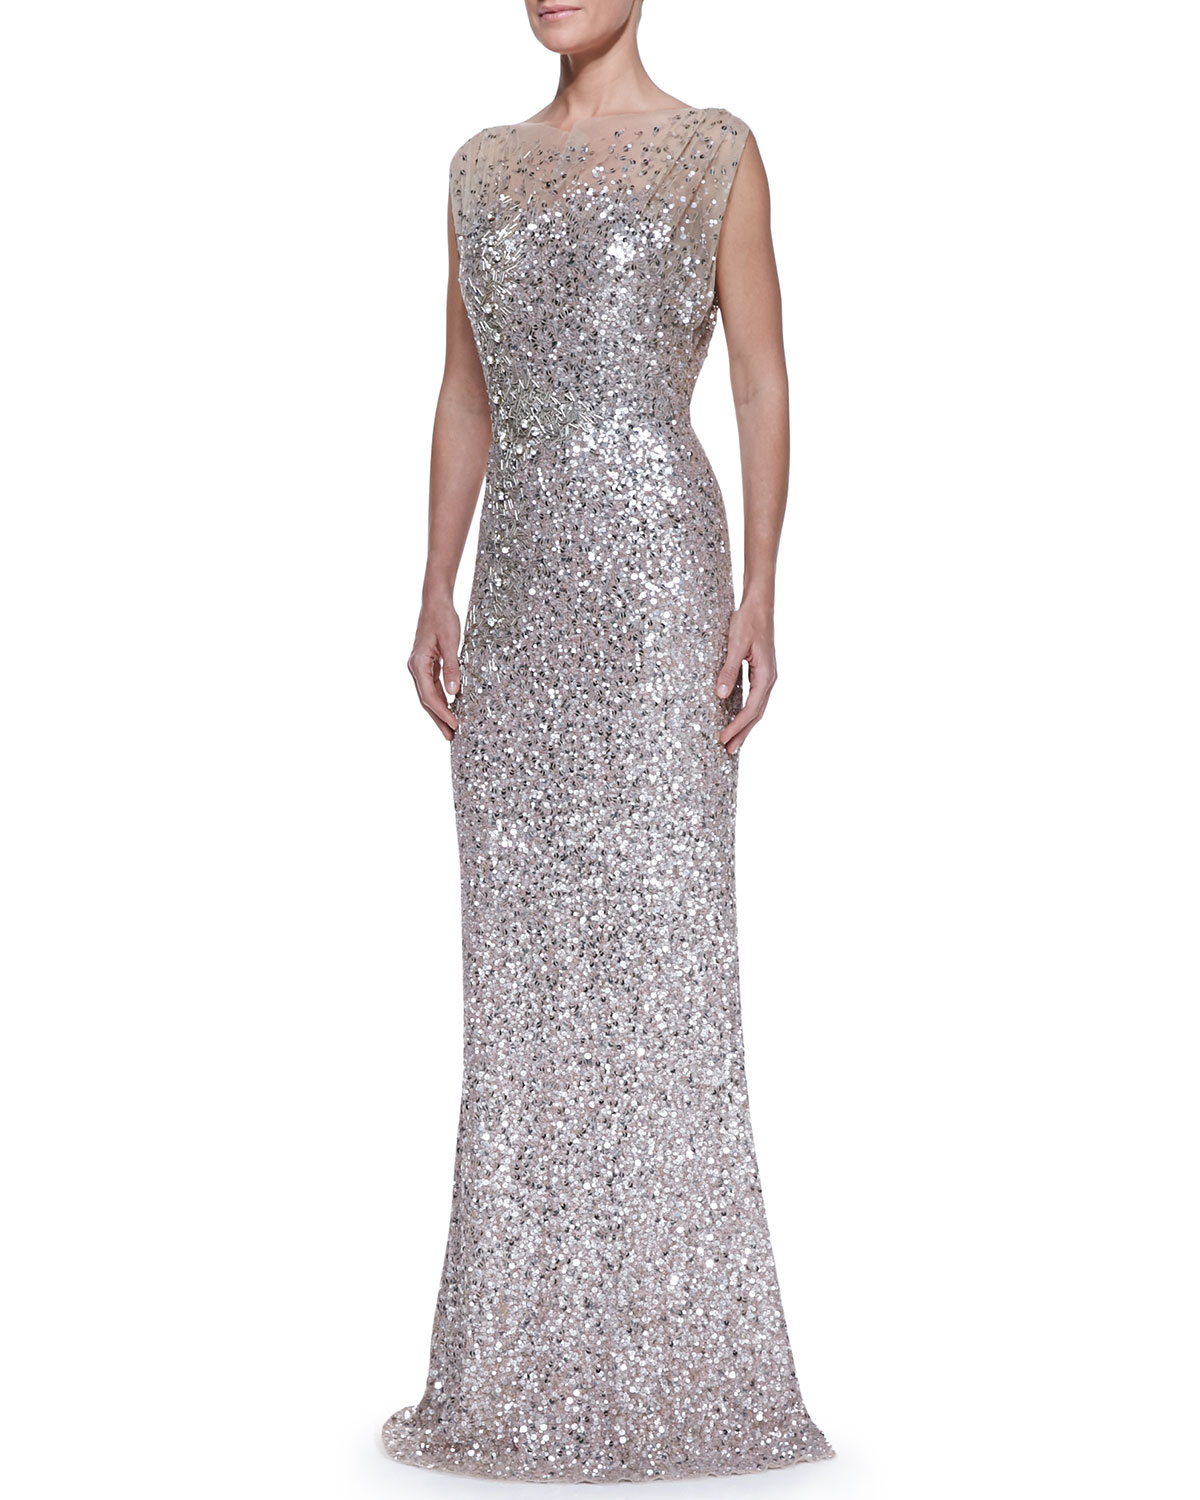 Vivica wrap dress - Jenny Packham Beaded Sequin Gown At Neiman Marcus